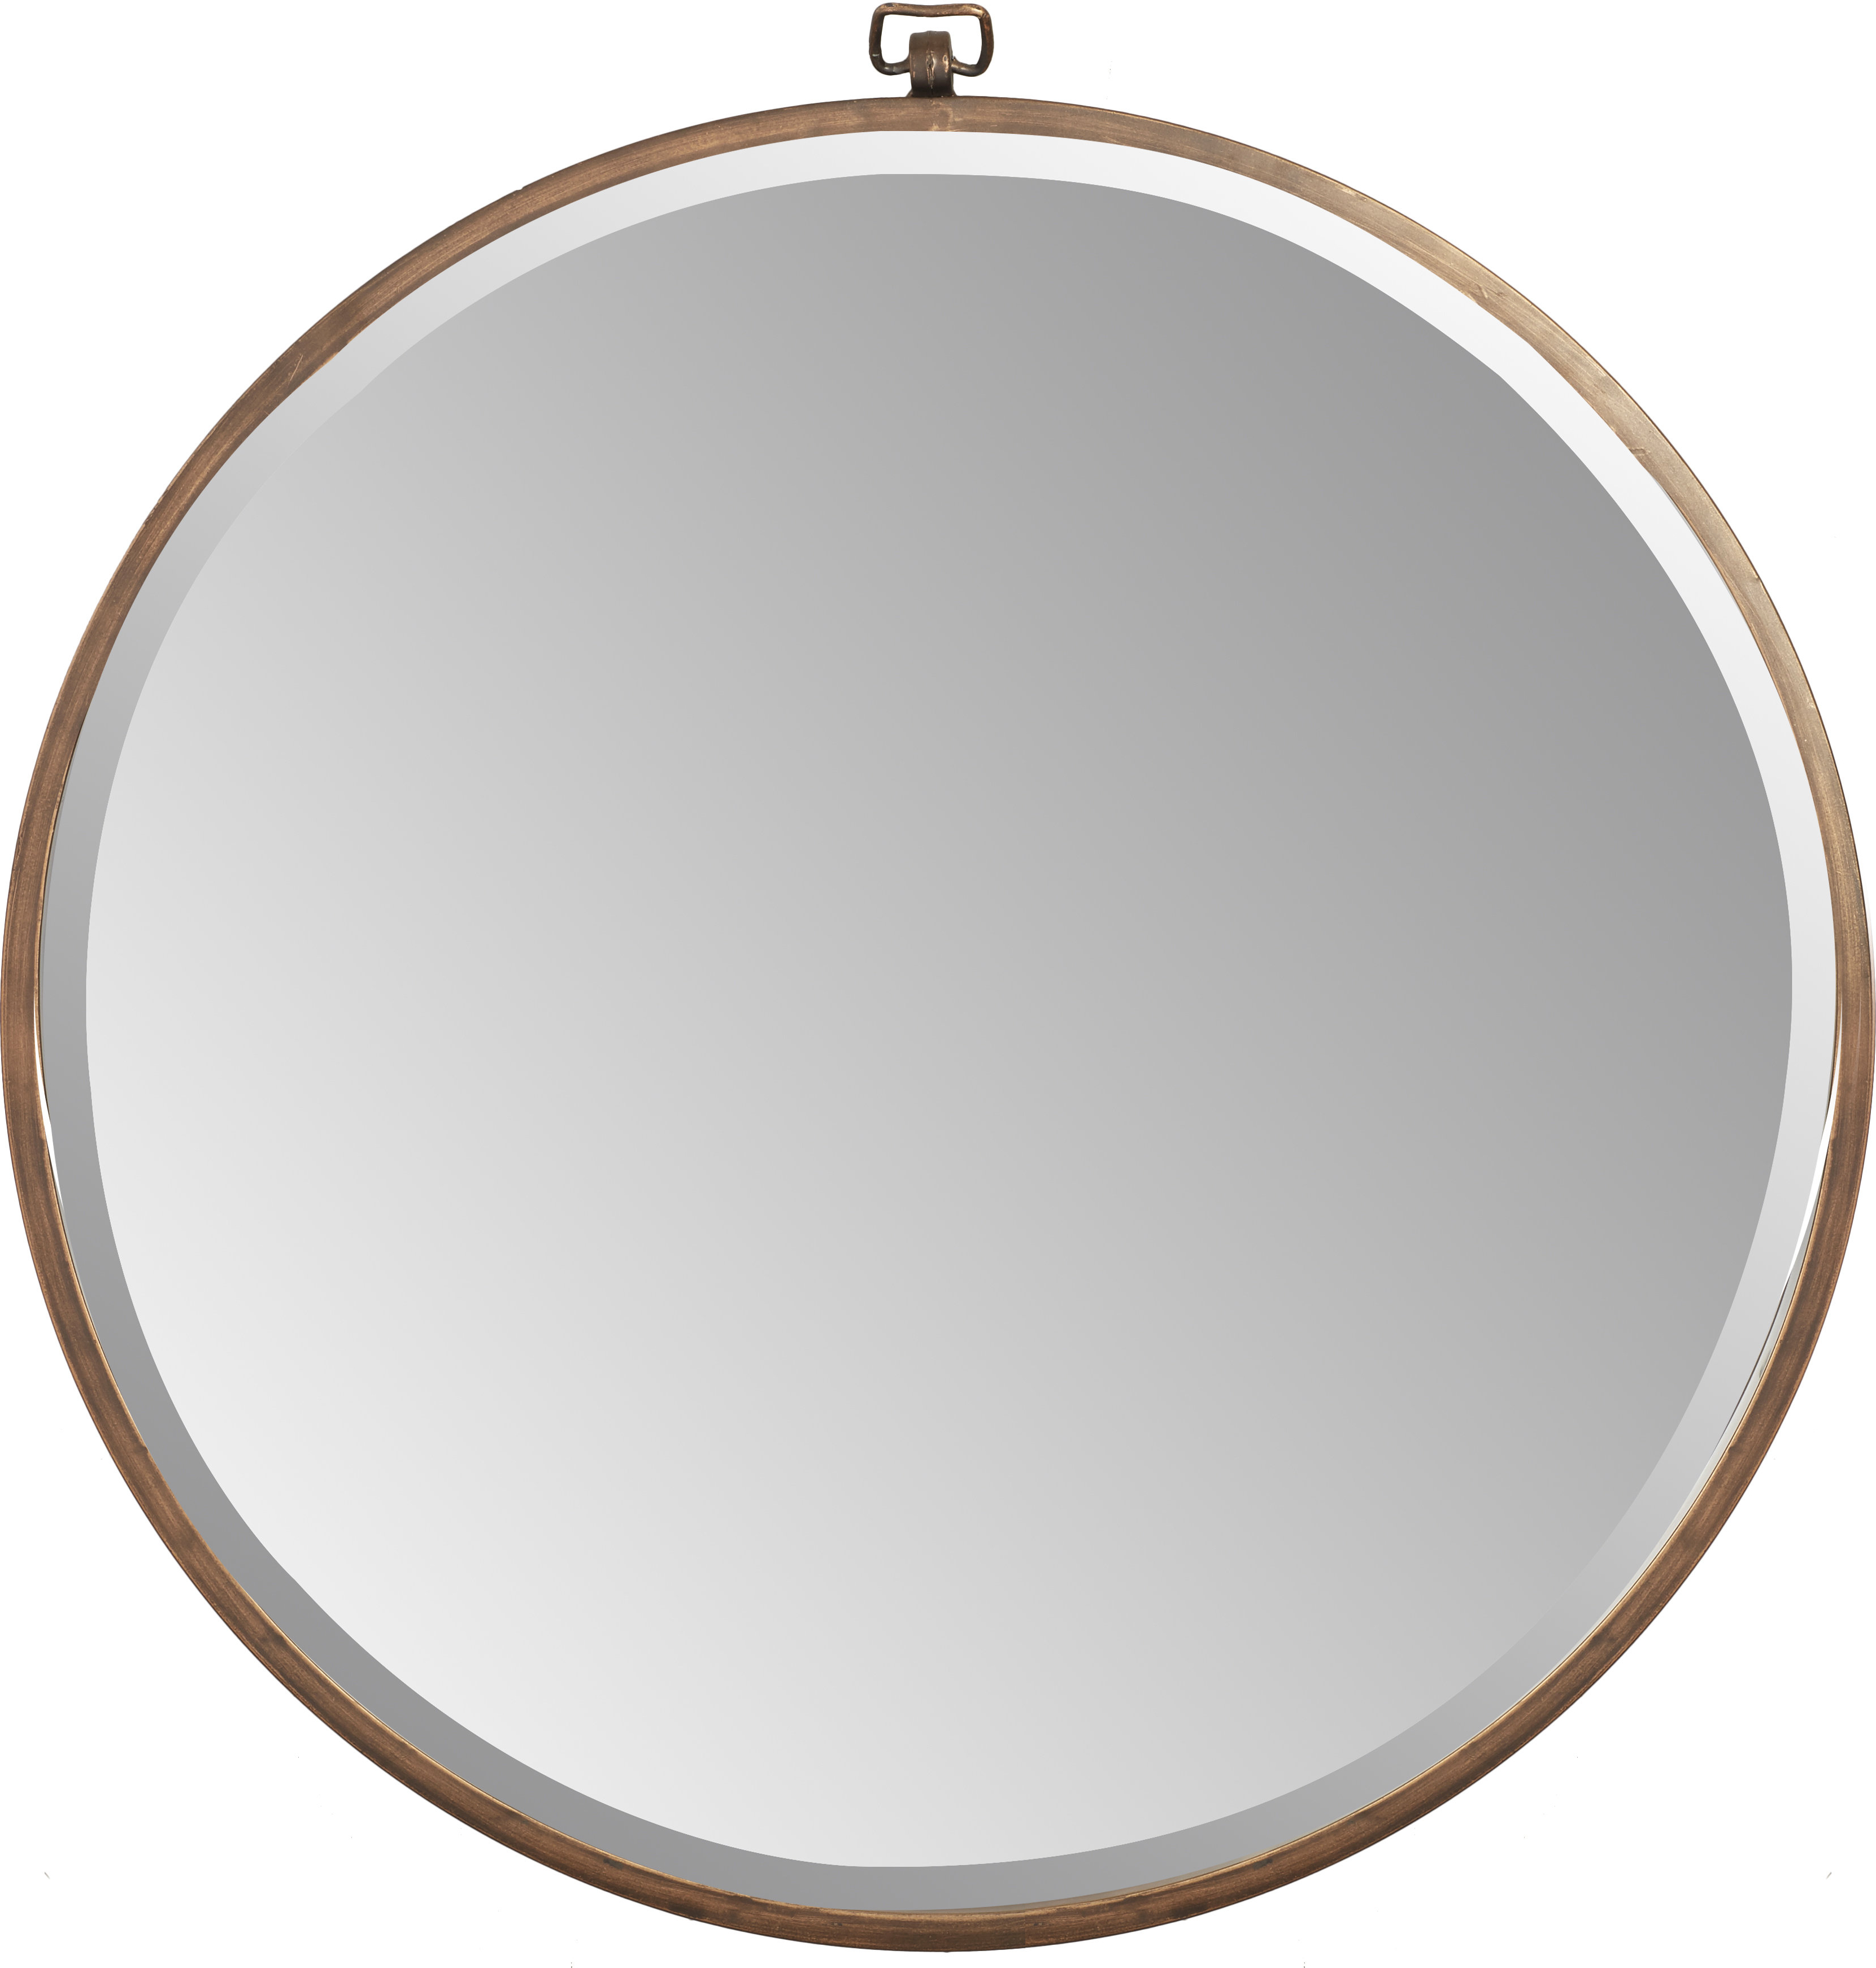 Minerva Accent Mirror Throughout Popular Swagger Accent Wall Mirrors (View 6 of 20)